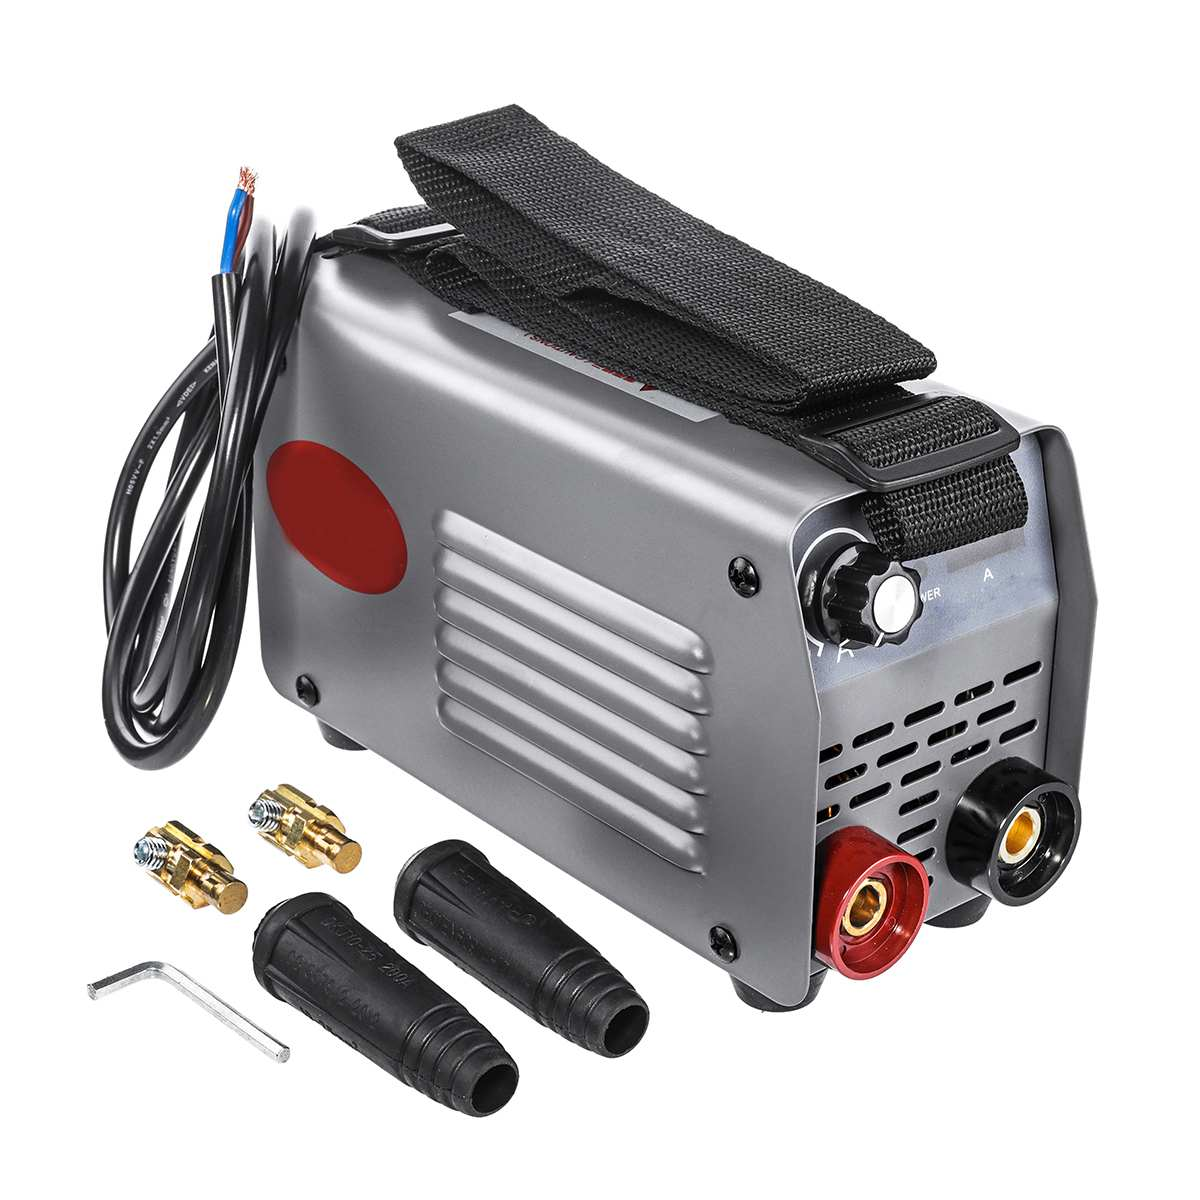 Portable Handheld 50/60Hz 220V Spot Welders LCD Display High-accuracy Spot Welding Machine Power Tool For Home Mini Welding ToolPortable Handheld 50/60Hz 220V Spot Welders LCD Display High-accuracy Spot Welding Machine Power Tool For Home Mini Welding Tool